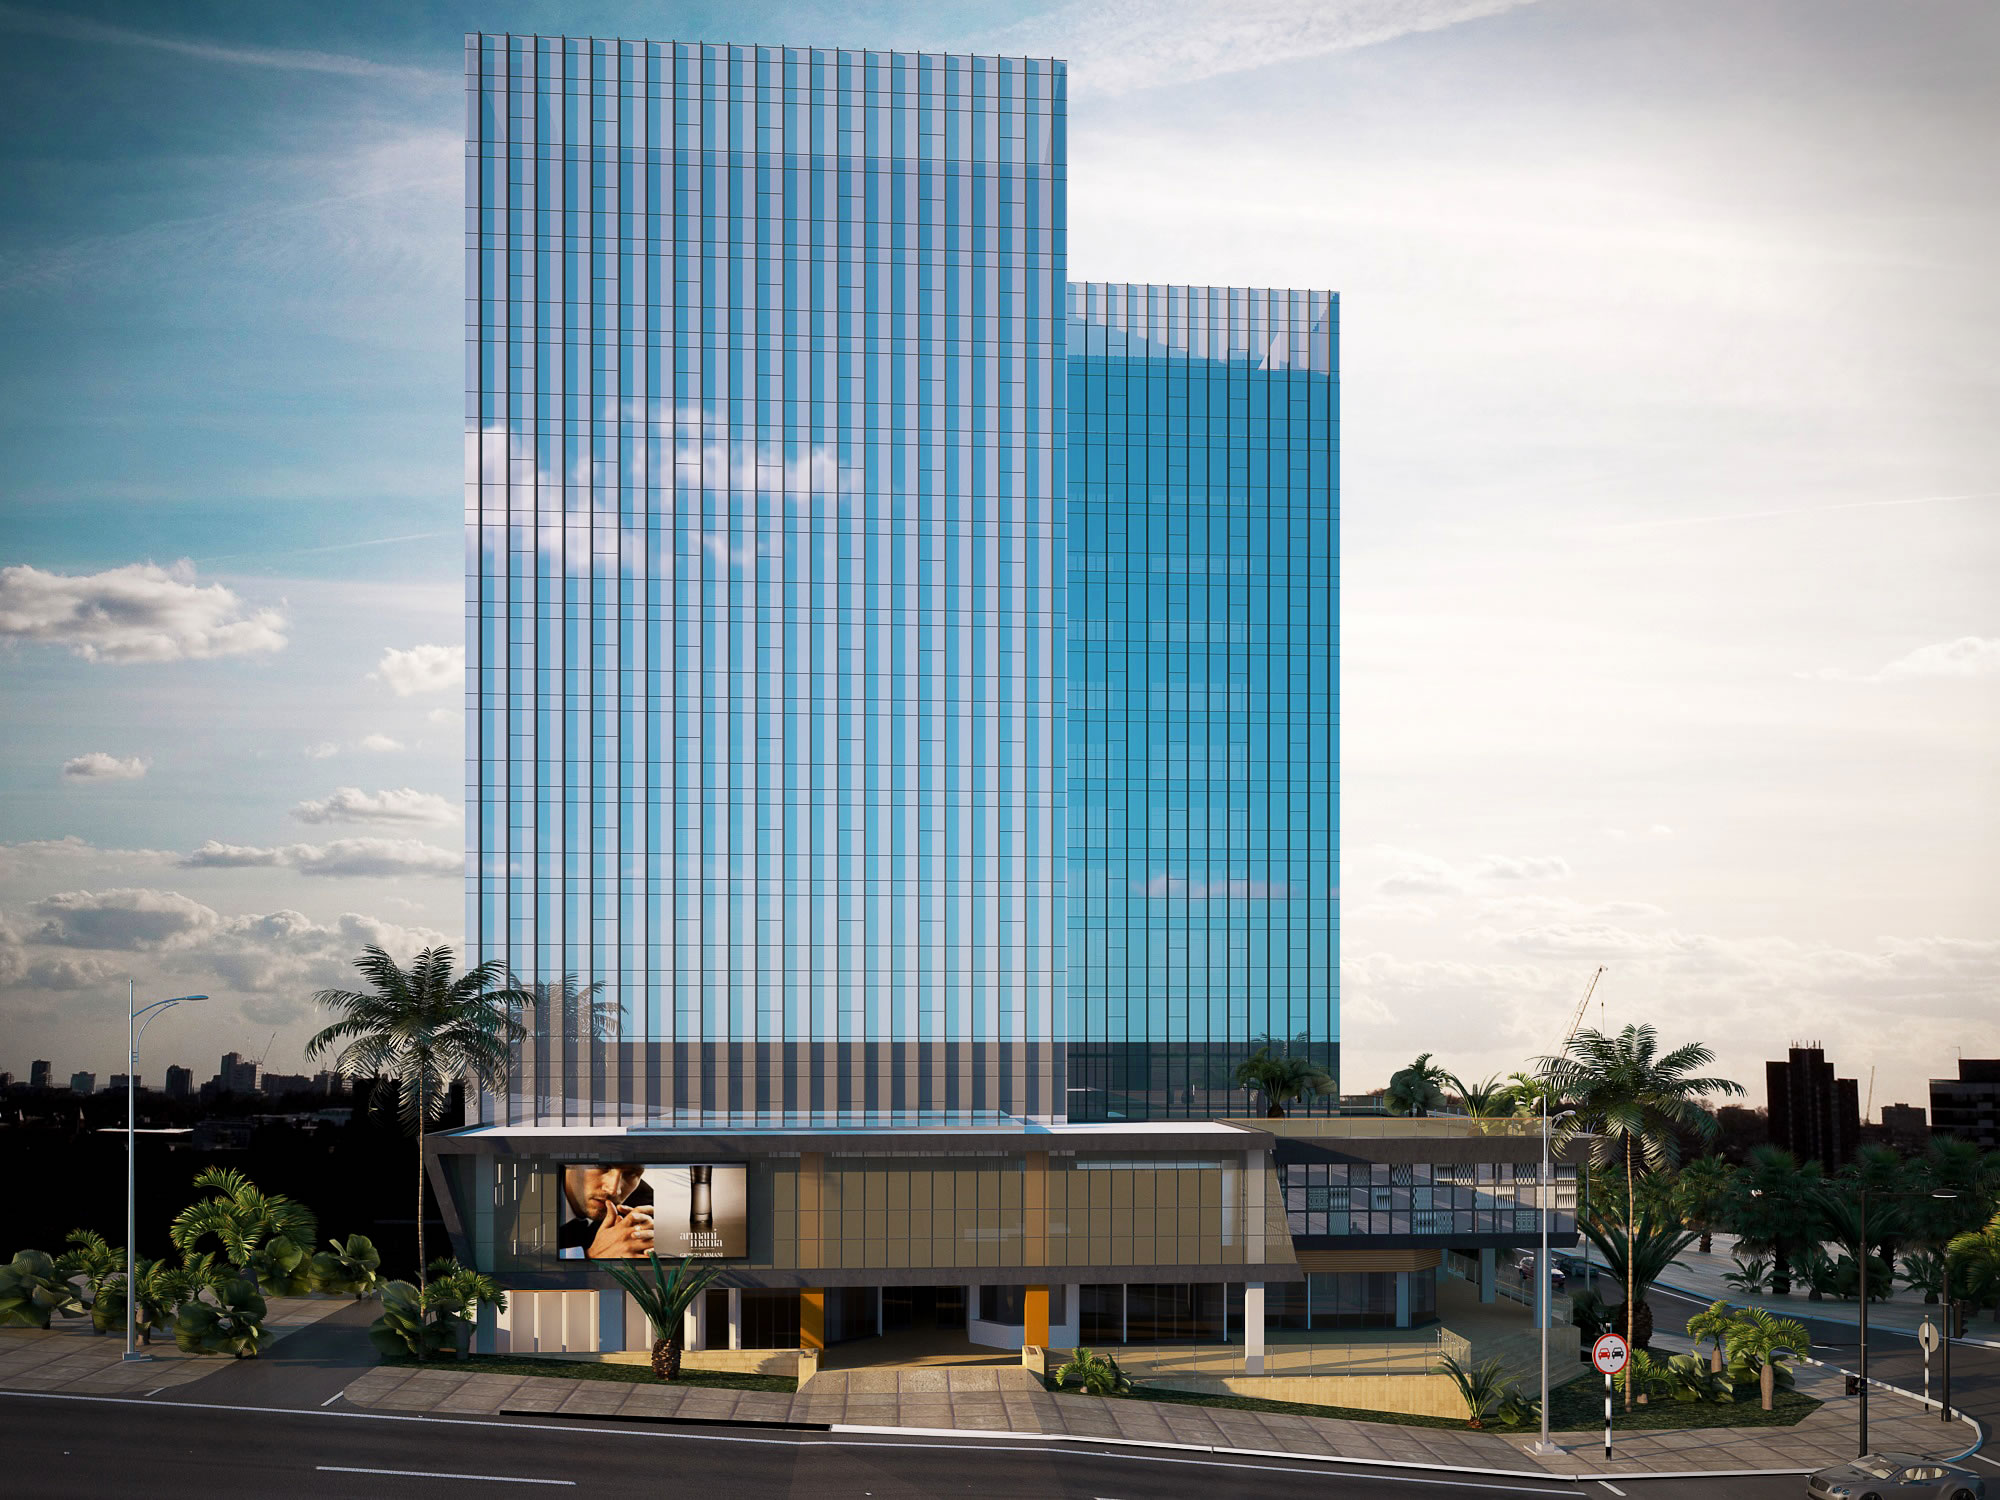 BANQUE POPULAIRE TOWERS, KIGALI-RWANDA